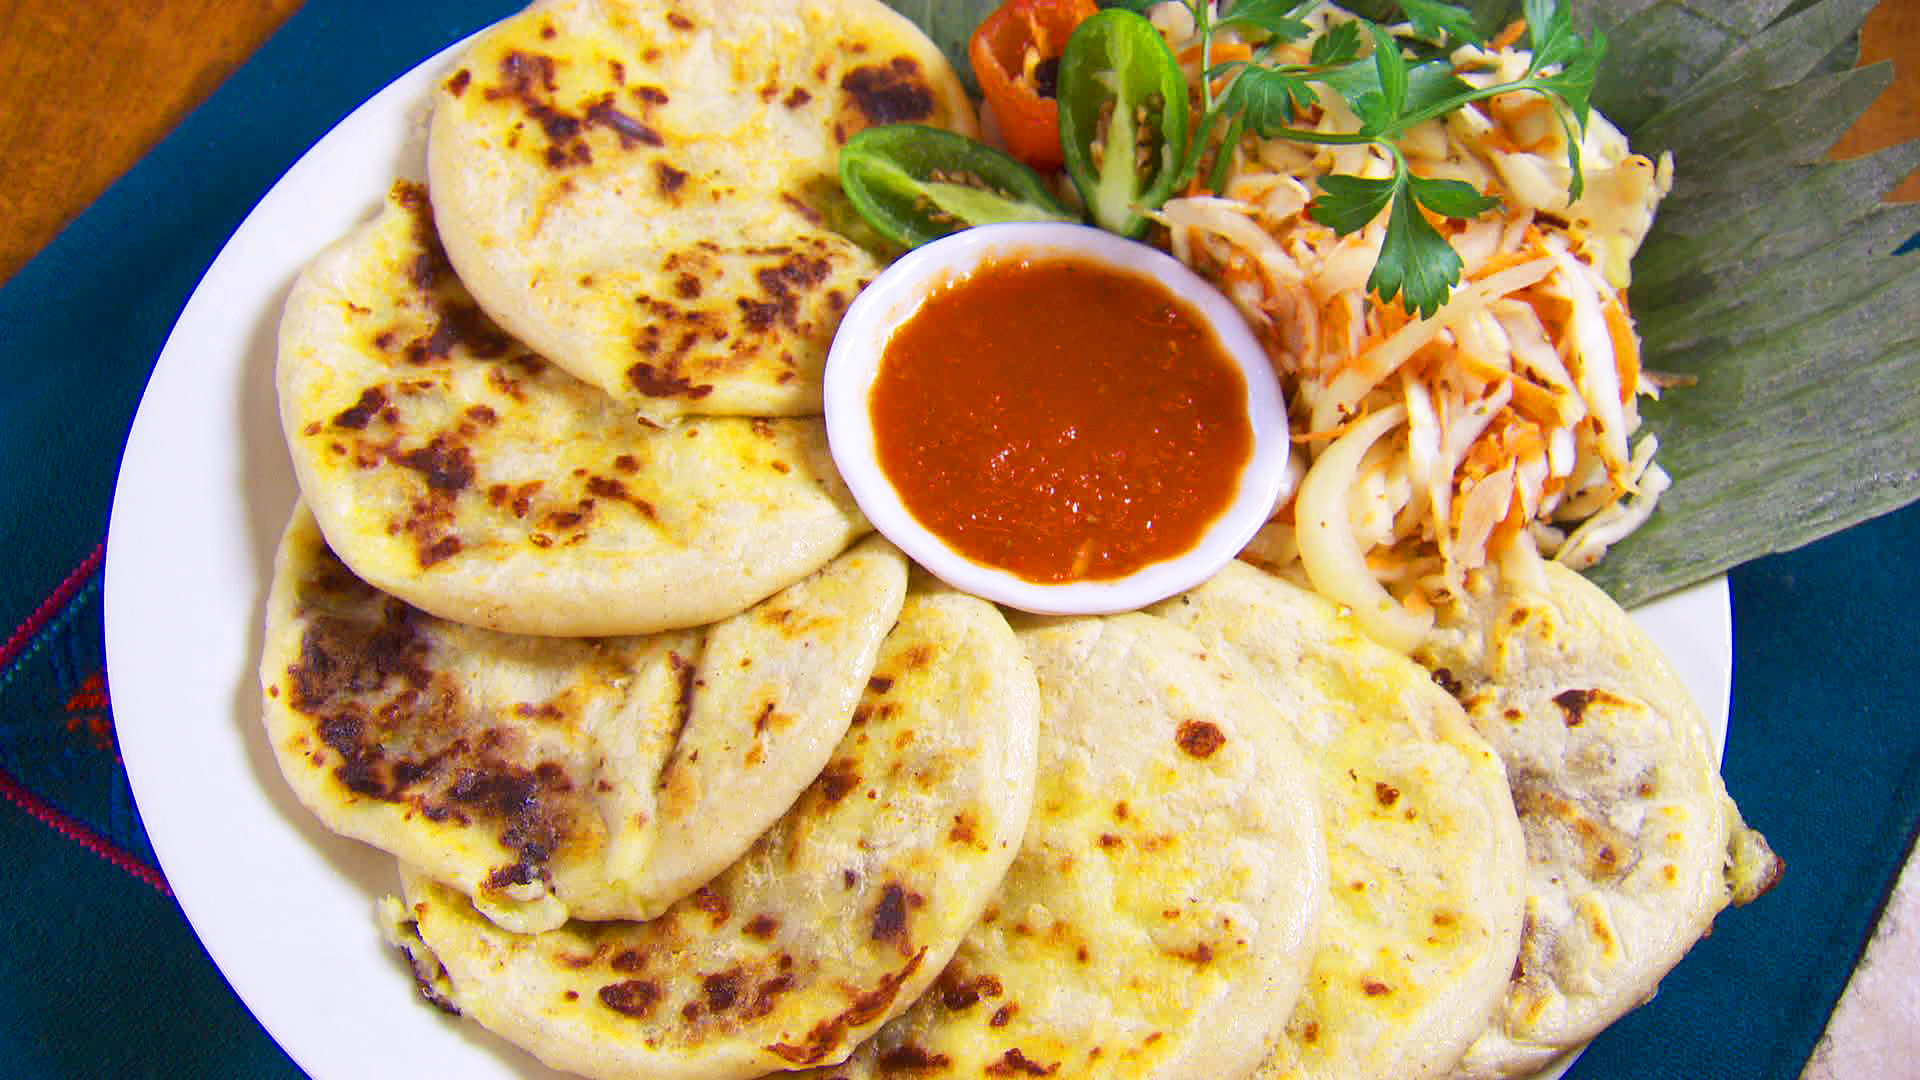 how to make pupusas How to make pupusas by: crystal martinez step 1: make the pupusa dough mix the masa harina,salt and flour in a bow step 3: roll the dough onto balls note  it helps to lightly oil your hands so the dough does not stick to your hands step 4: fill the pupusas (with beans&cheese.